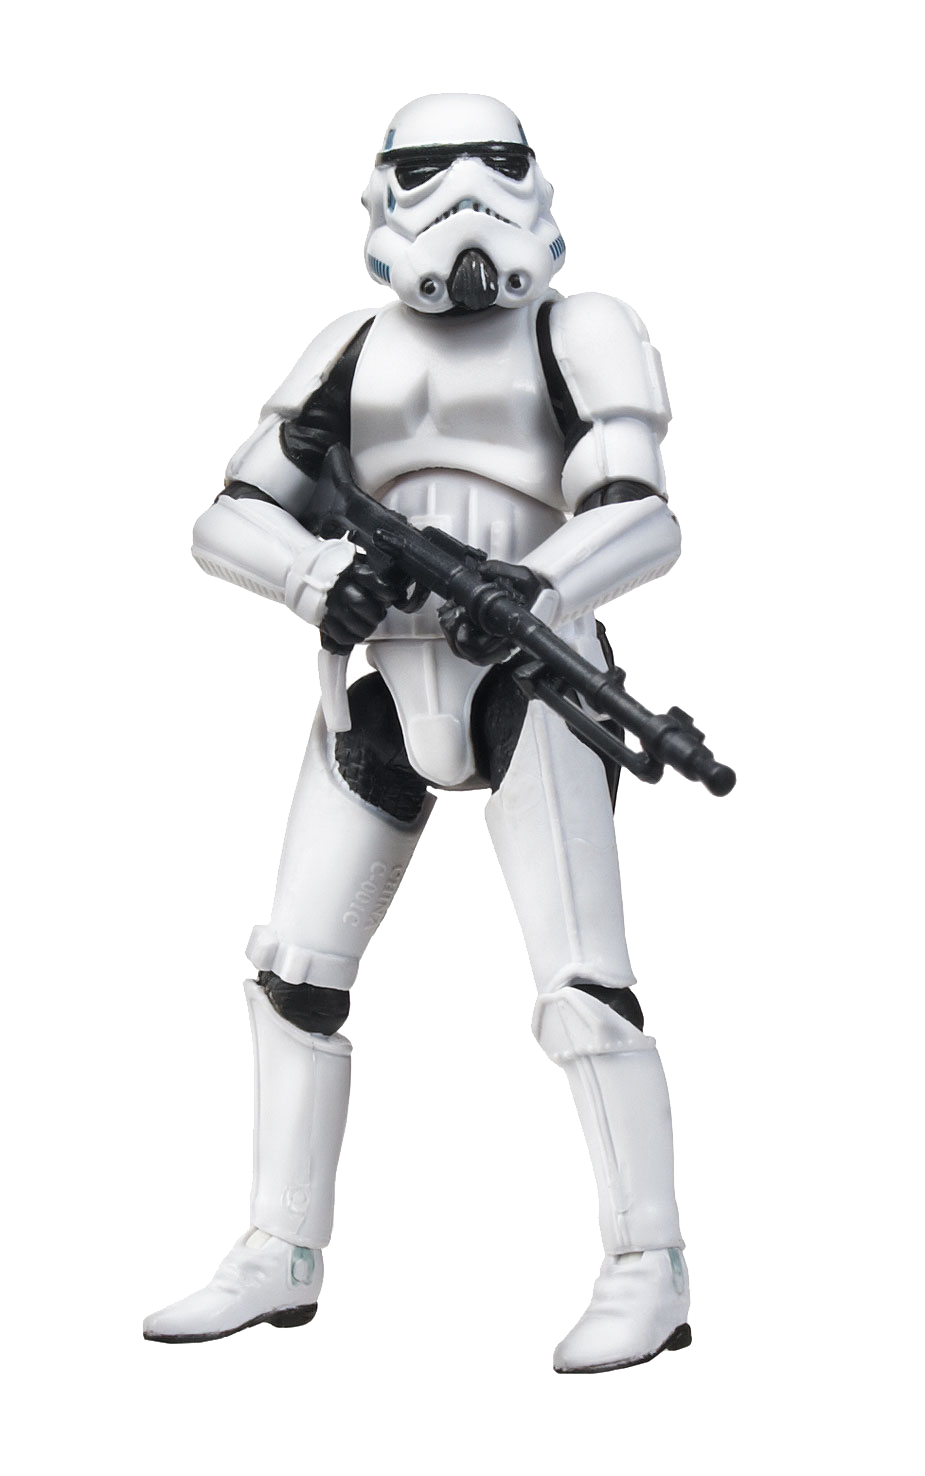 Storm Trooper Digital Tools For Designers amp Architects